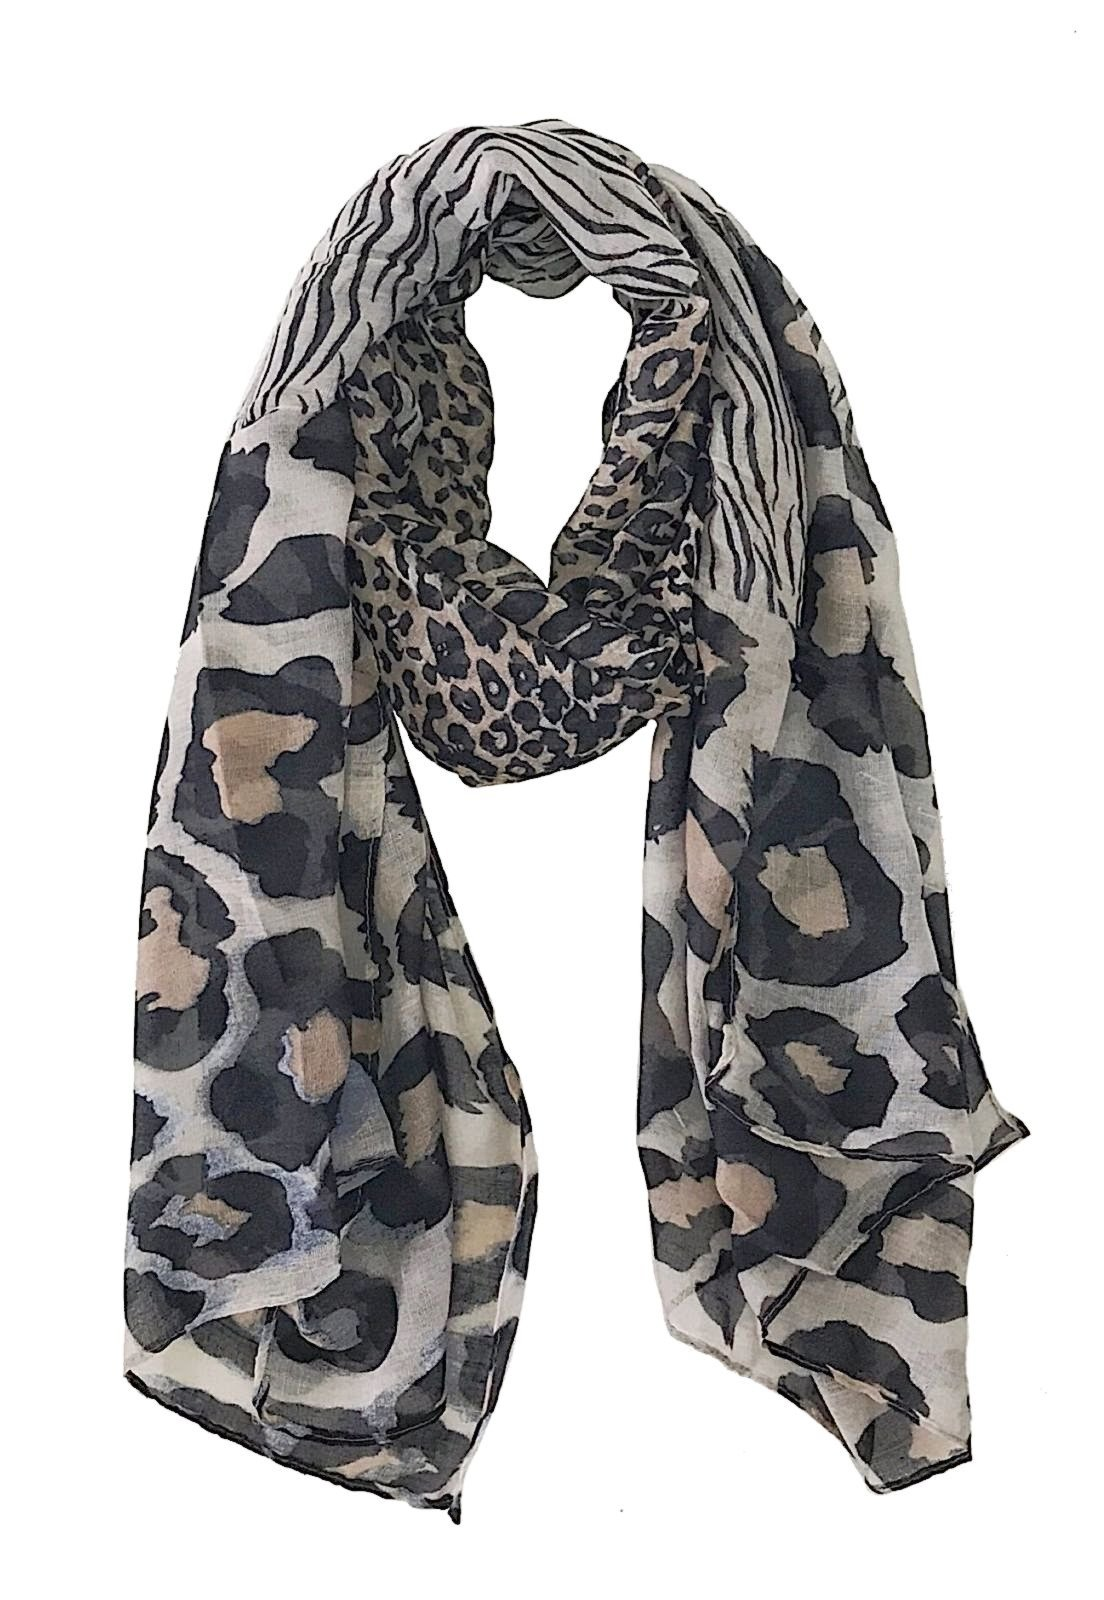 Lenço Its! Animal Print Bege/Preto - Marca Its!